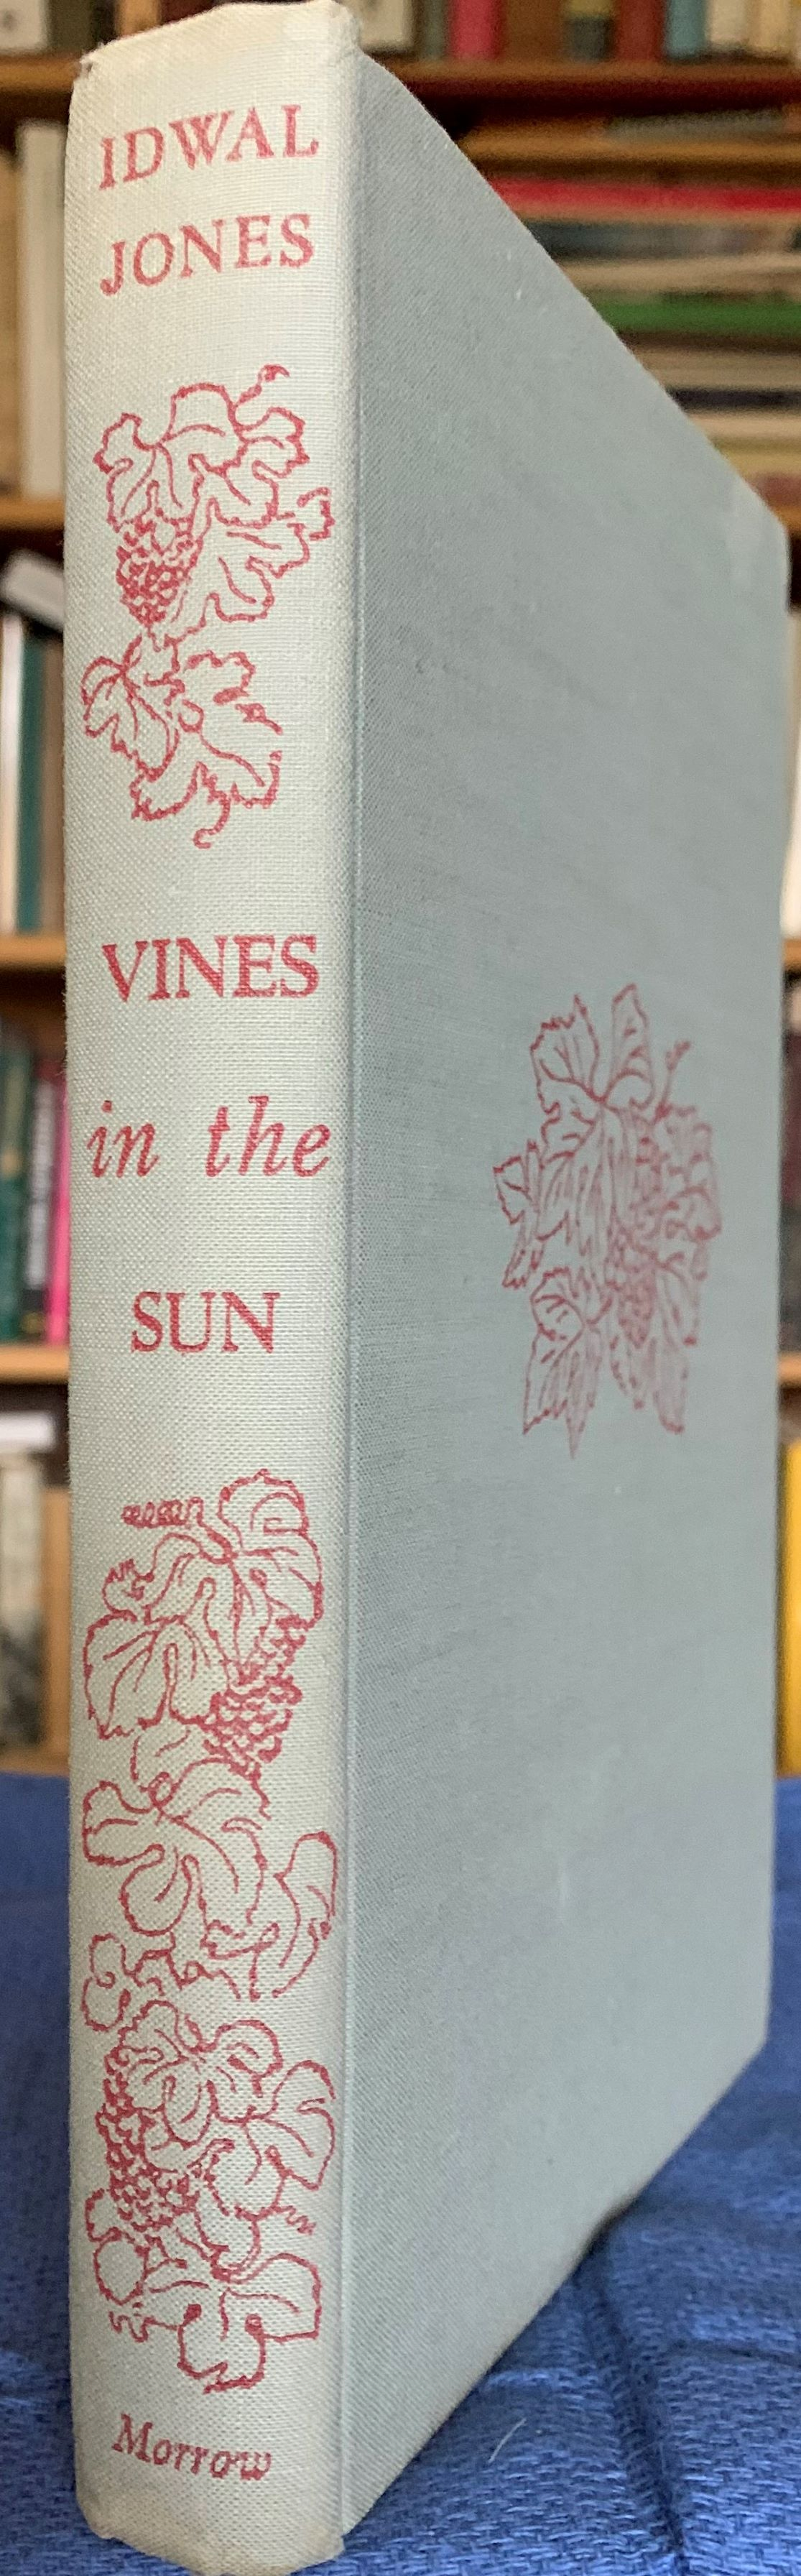 Image for Vines in the Sun: a Journey Through the California Vinyards [inscribed by the author].